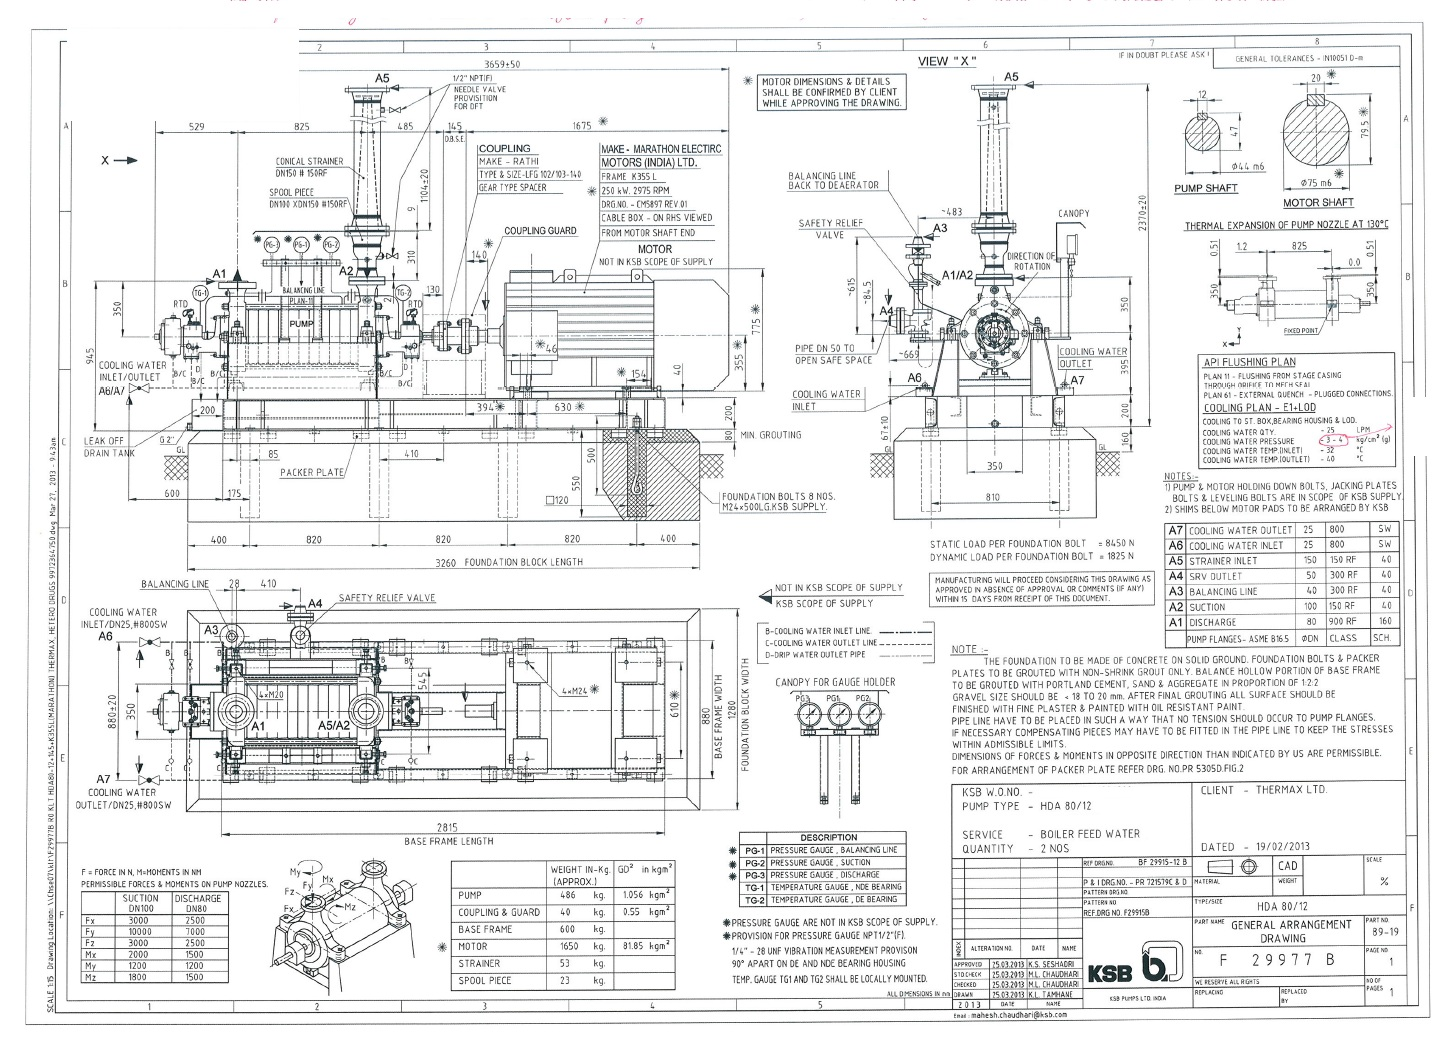 Multistage Pump template not available  - Autodesk Community